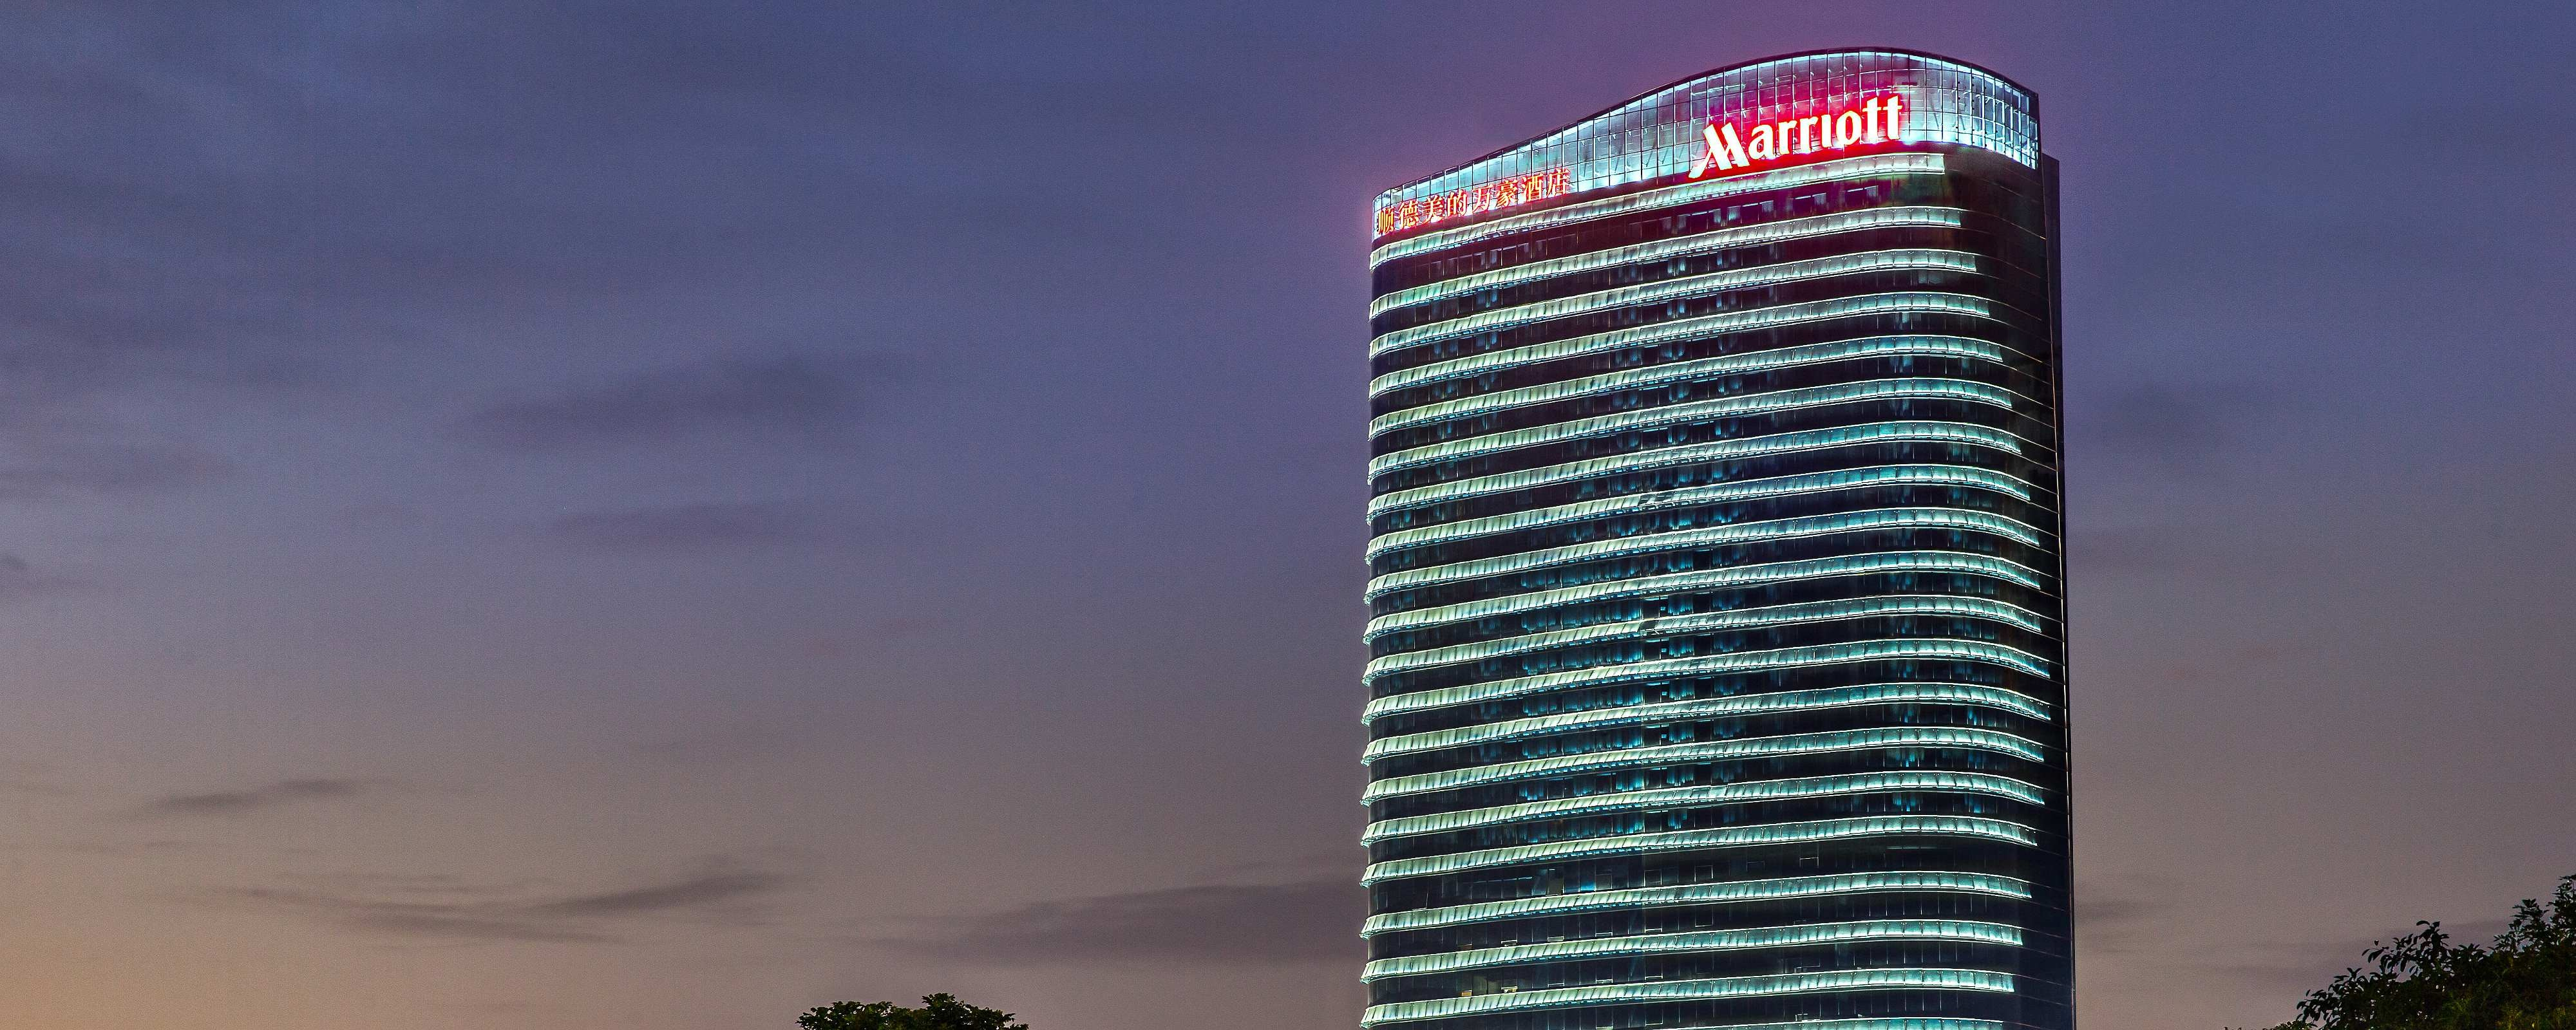 Shunde Marriott Hotel night exterior